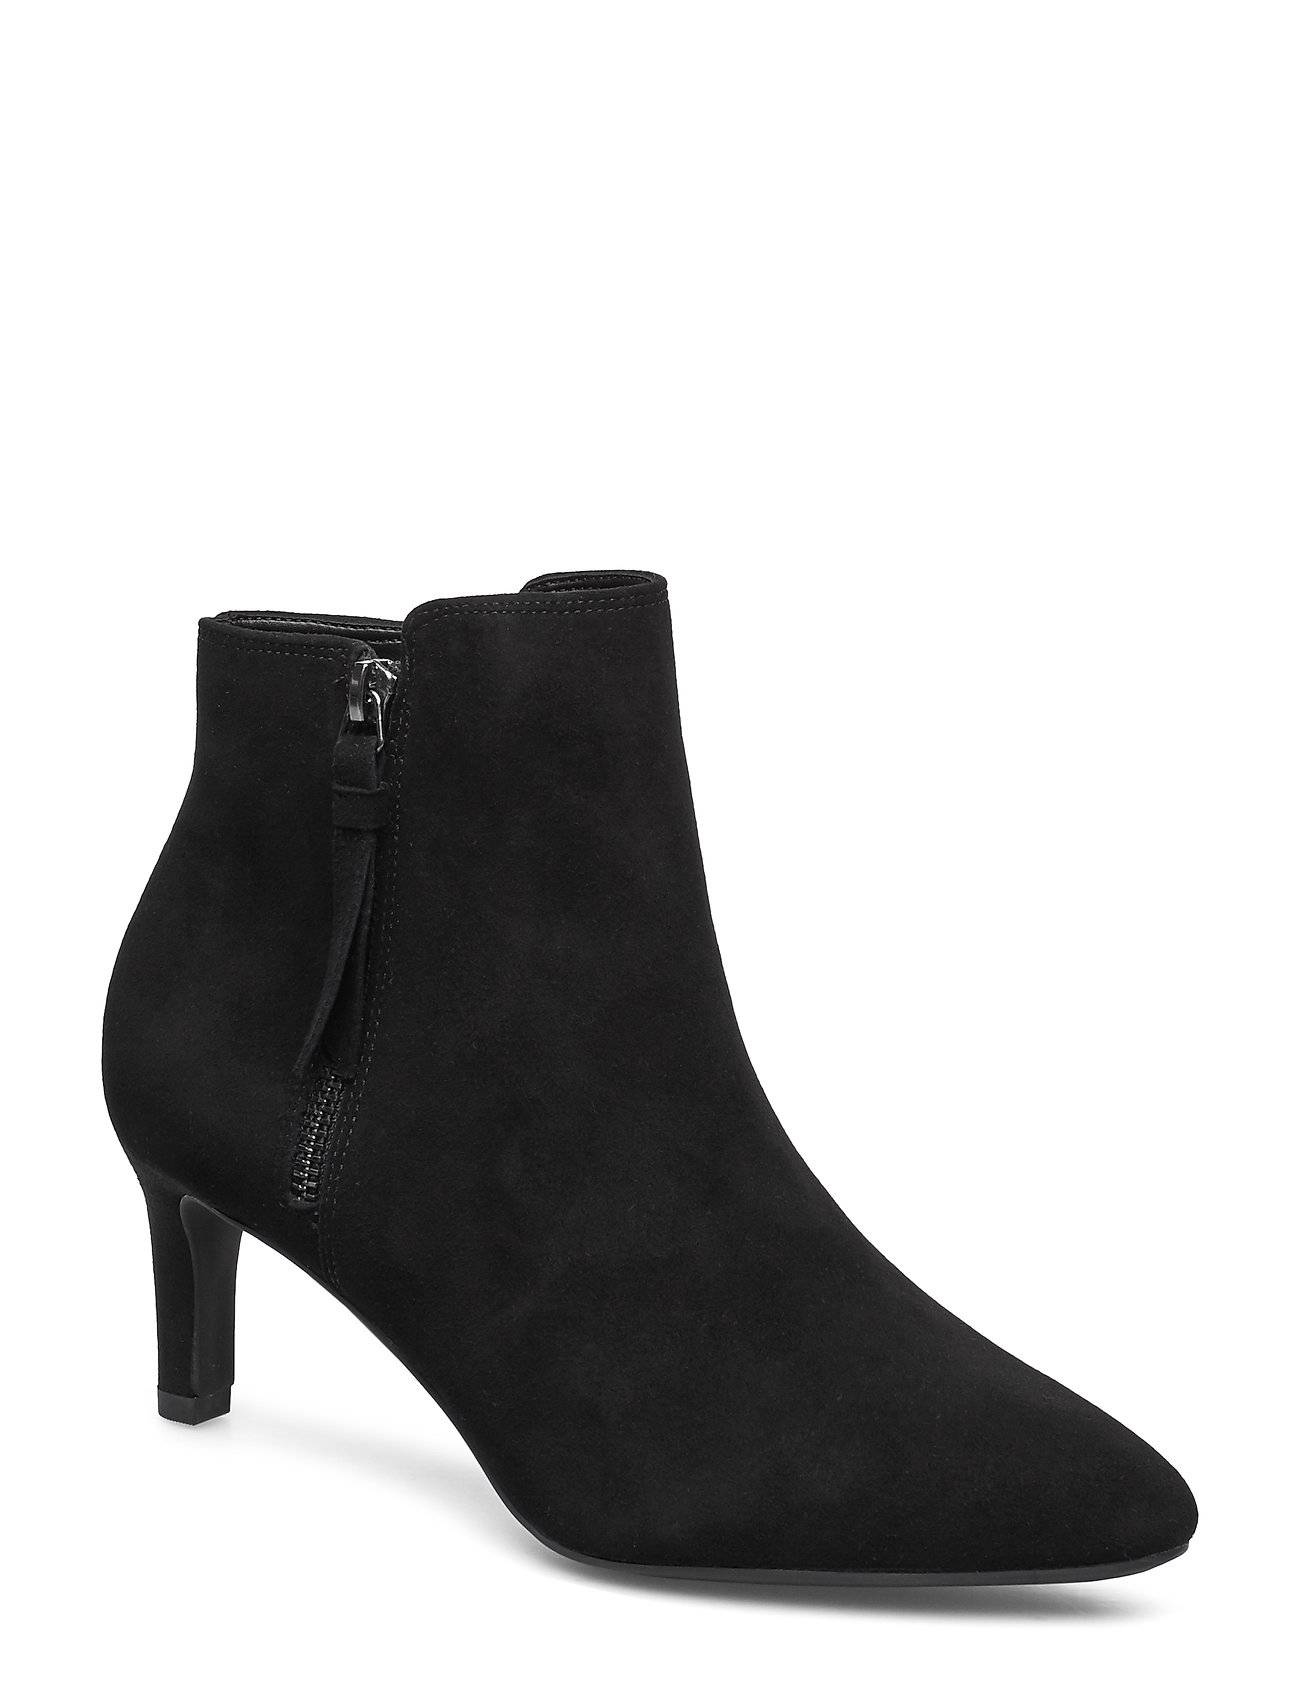 Clarks Calla Blossom Shoes Boots Ankle Boots Ankle Boots With Heel Musta